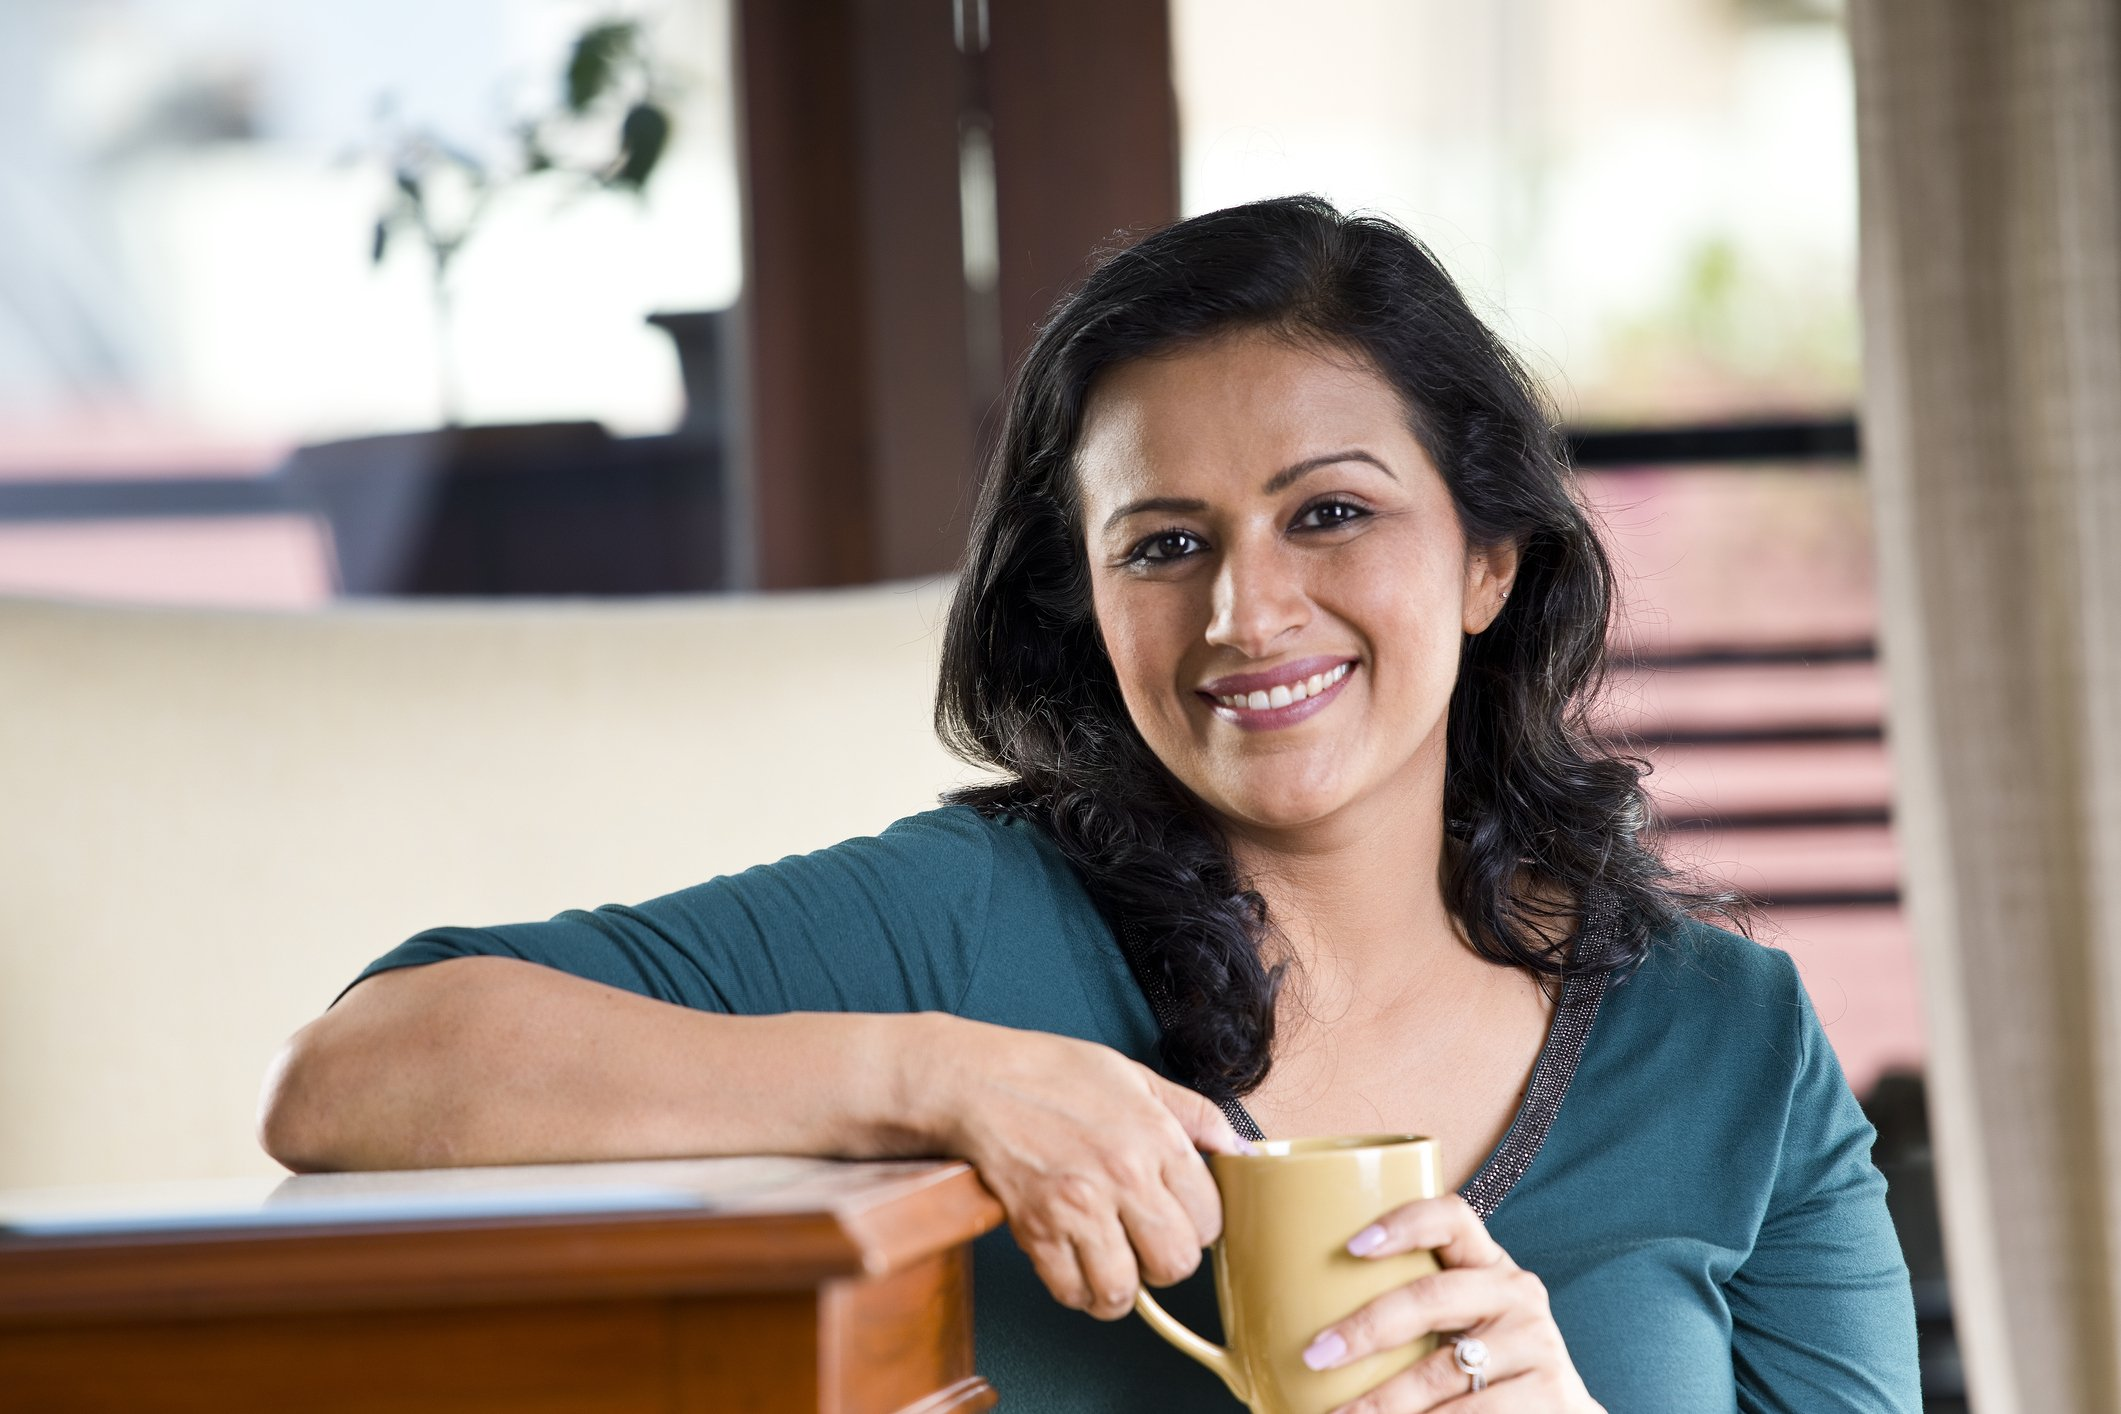 Beautiful Indian woman drinking coffee at home